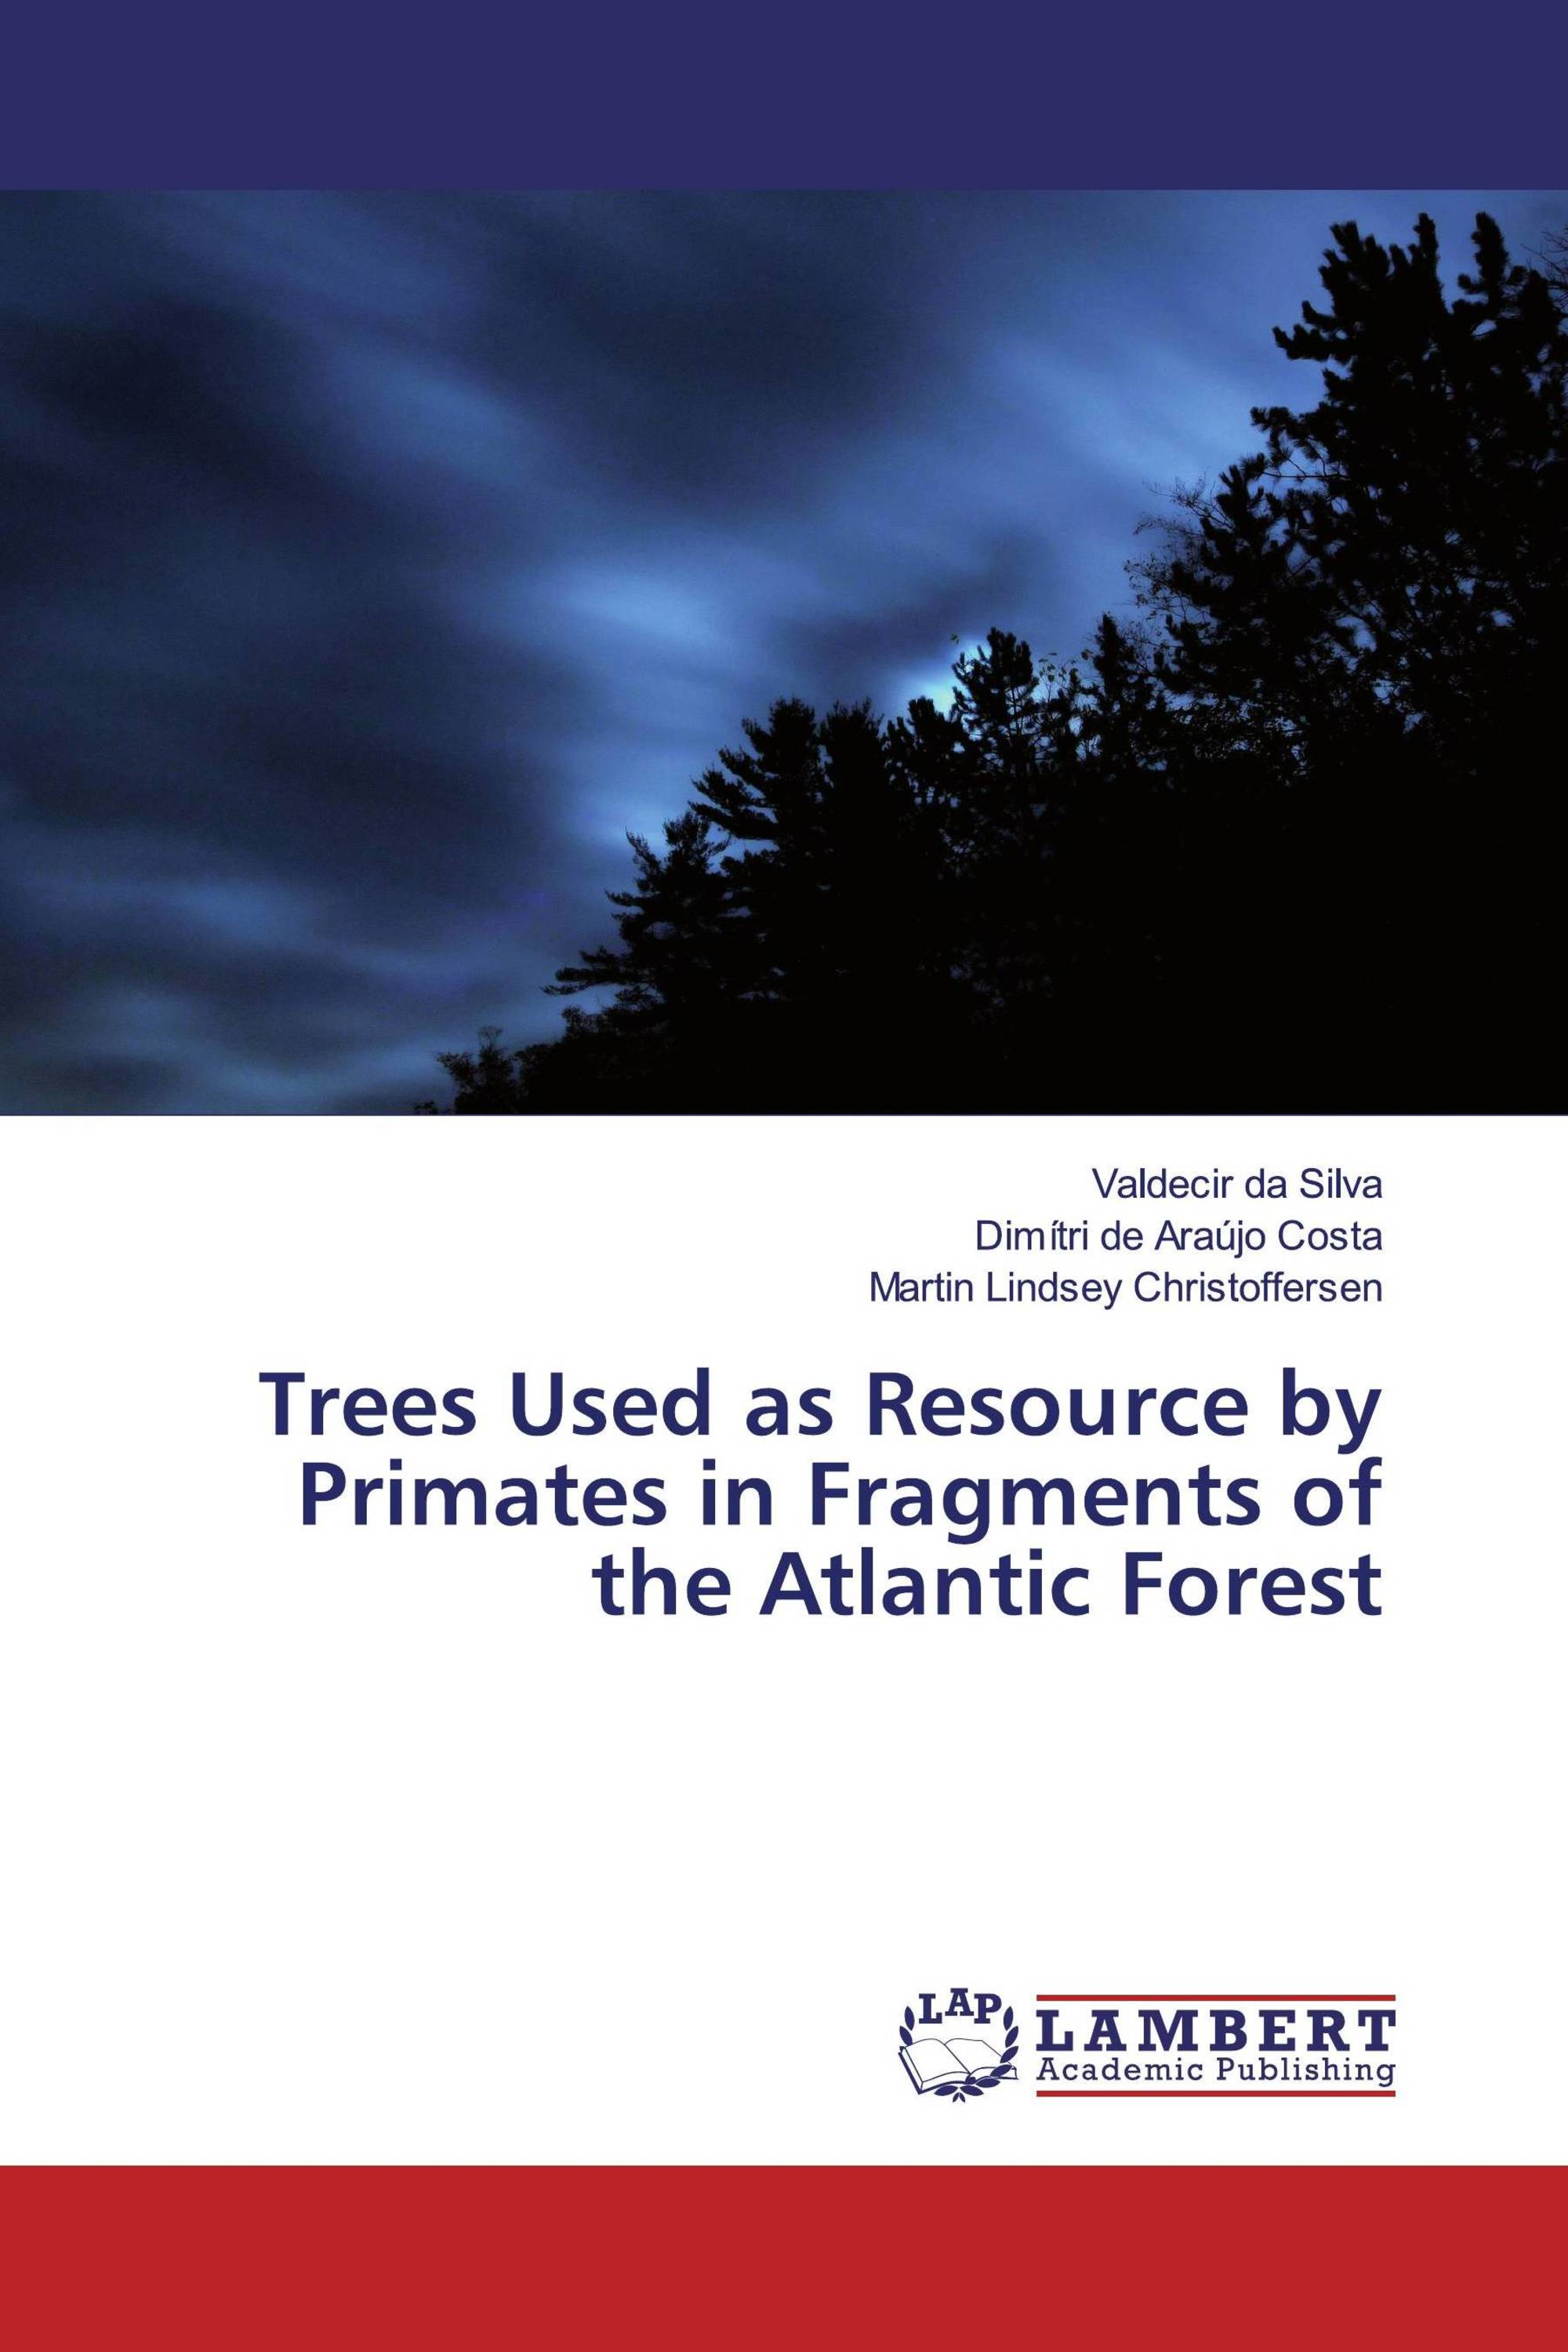 Trees Used as Resource by Primates in Fragments of the Atlantic Forest